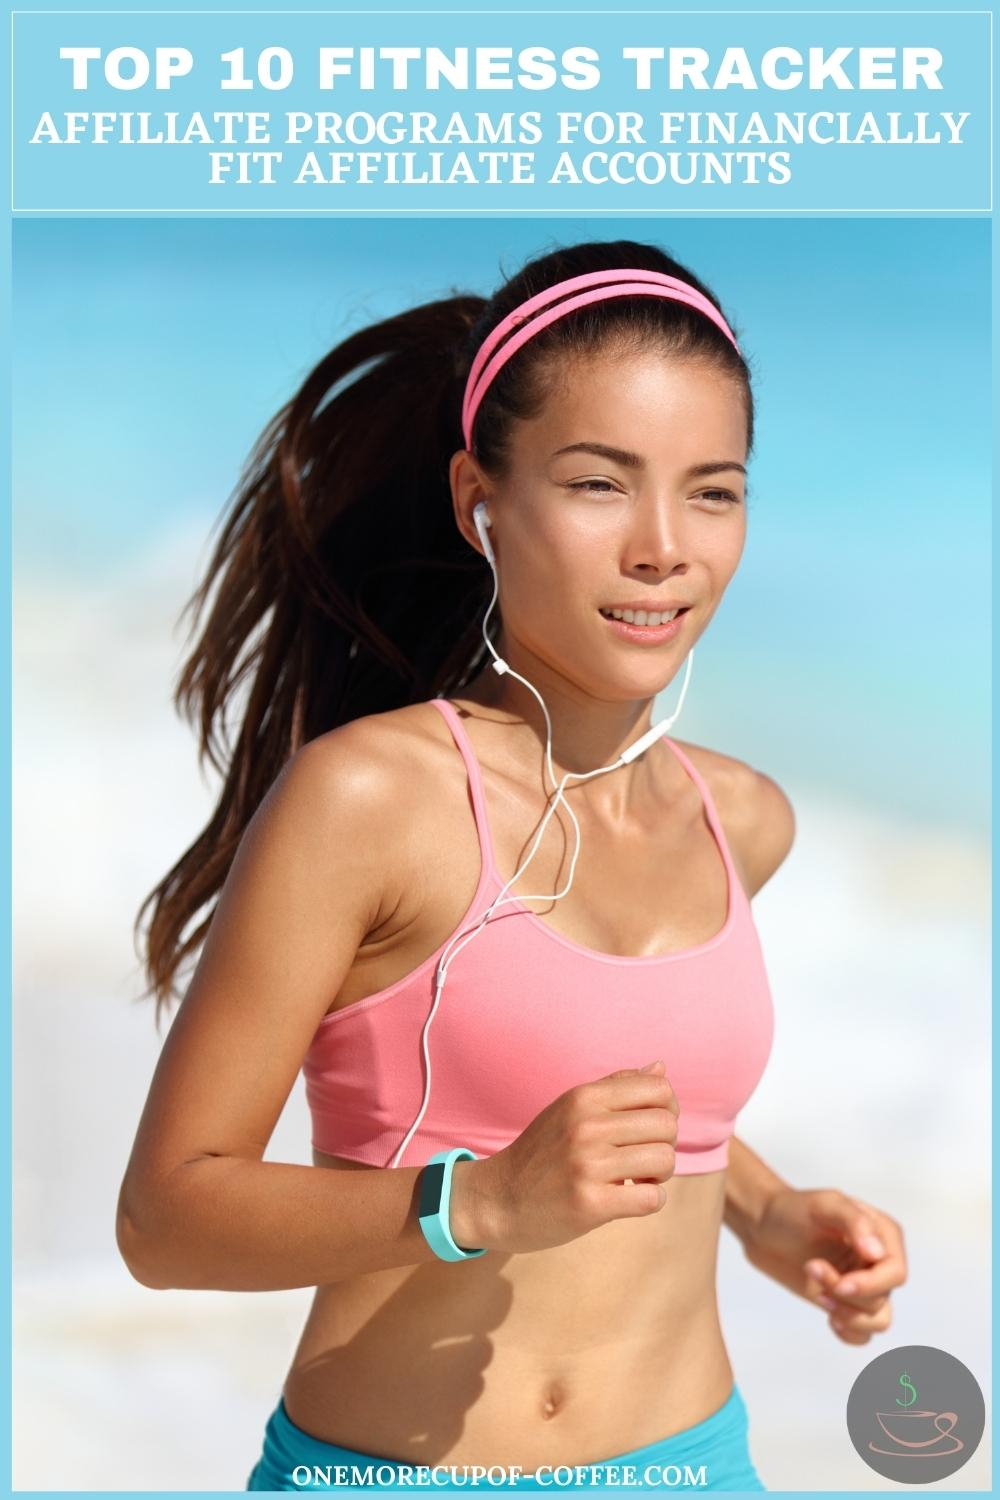 """long-haired brunette jogging wearing an earphone and blue fitness tracker, with a pink headband, pink top, and blue leggings; with text overlay """"Top 10 Fitness Tracker Affiliate Programs For Financially Fit Affiliate Accounts"""""""